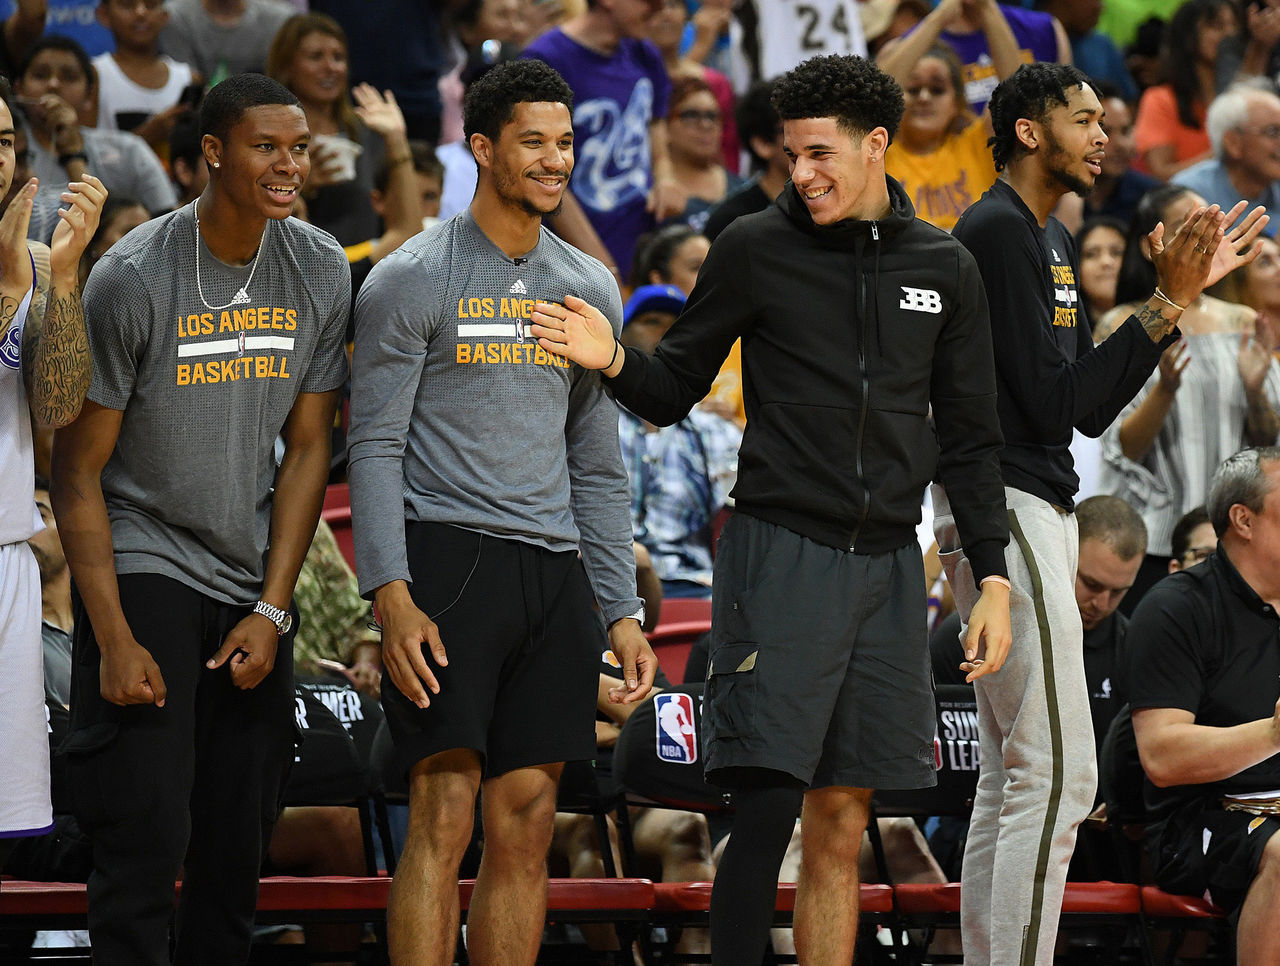 Cropped_2017-07-18t050754z_1896197210_nocid_rtrmadp_3_nba-summer-league-portland-trail-blazers-at-los-angeles-lakers